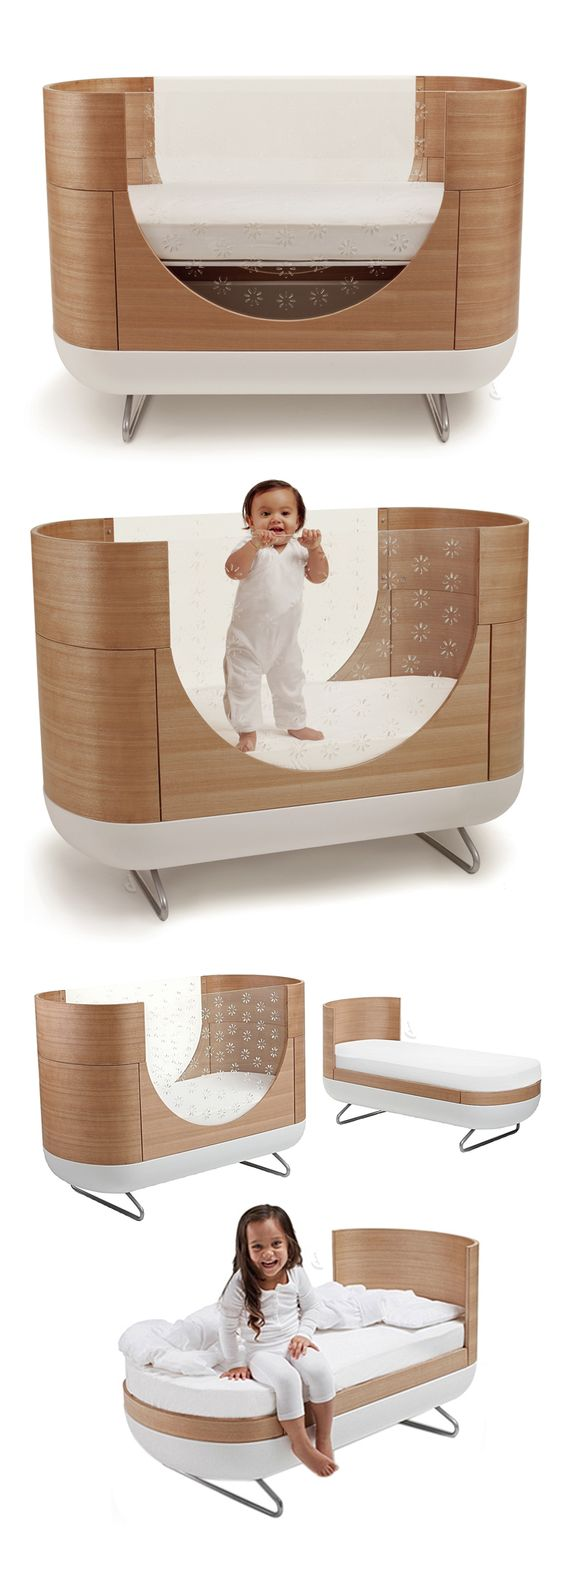 clearly modern baby nursery products ber stylish and practical ubabub brings you a range of carefully considered ultra safe durable and ecologically baby modern furniture